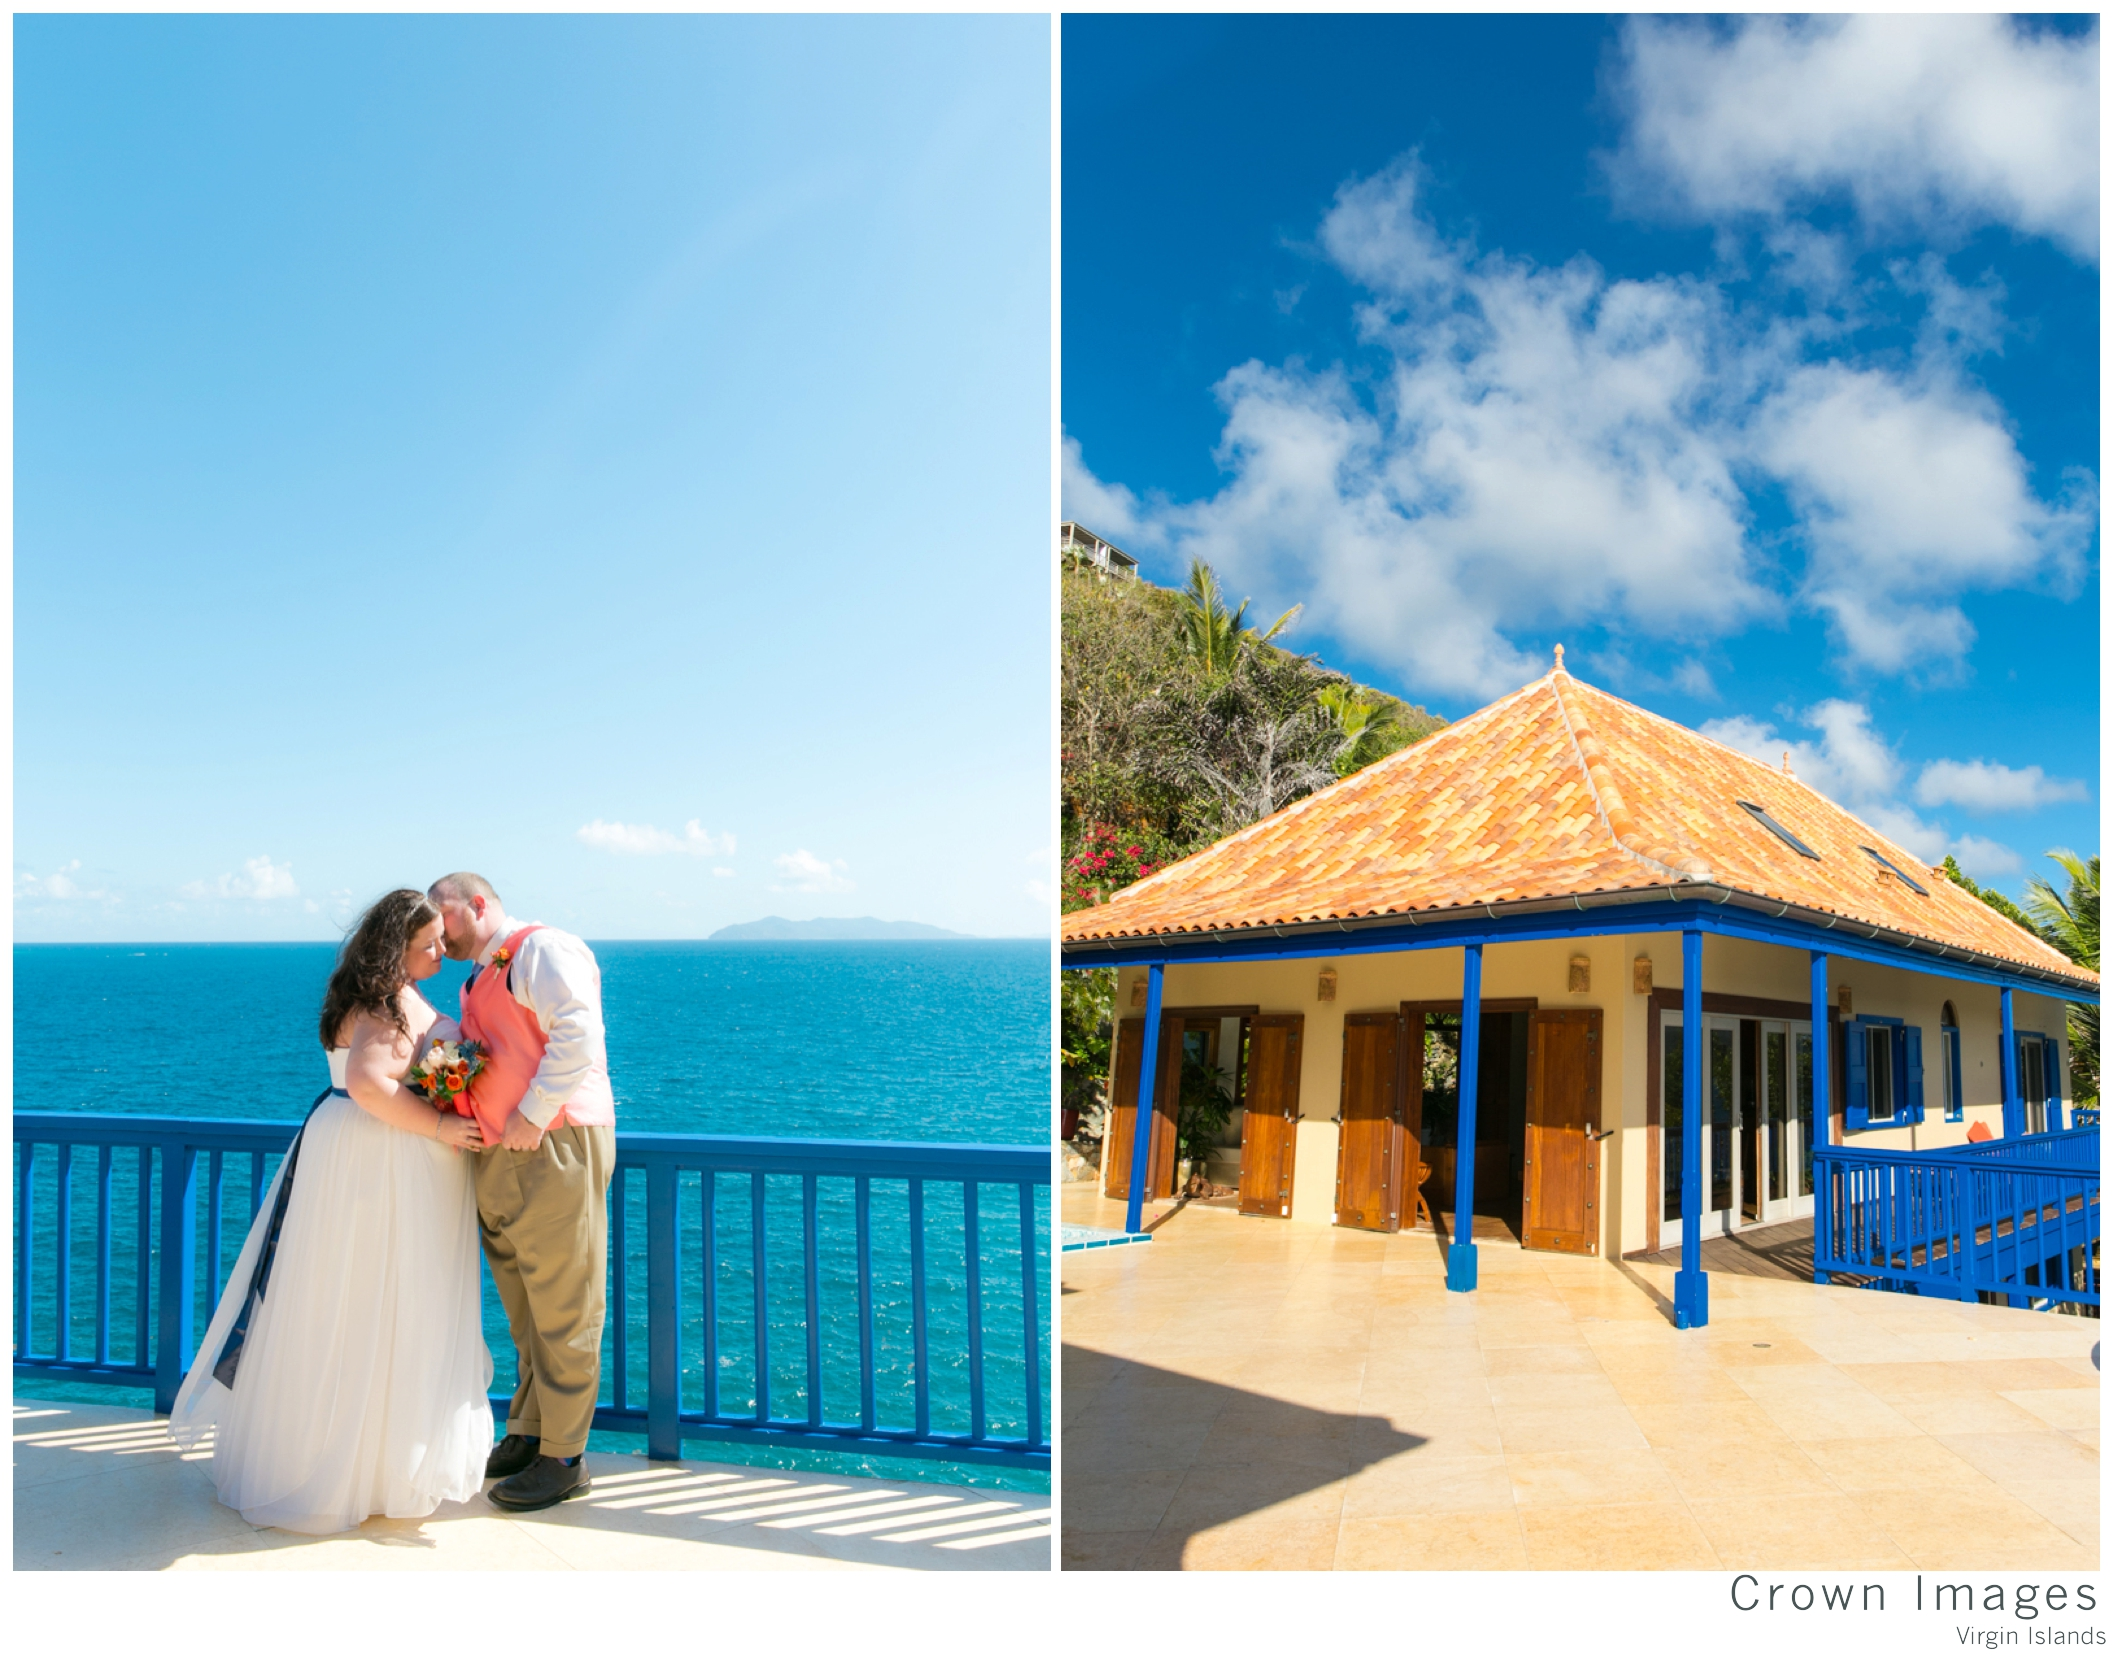 st_thomas_wedding_photographer_crown_images_0791.jpg